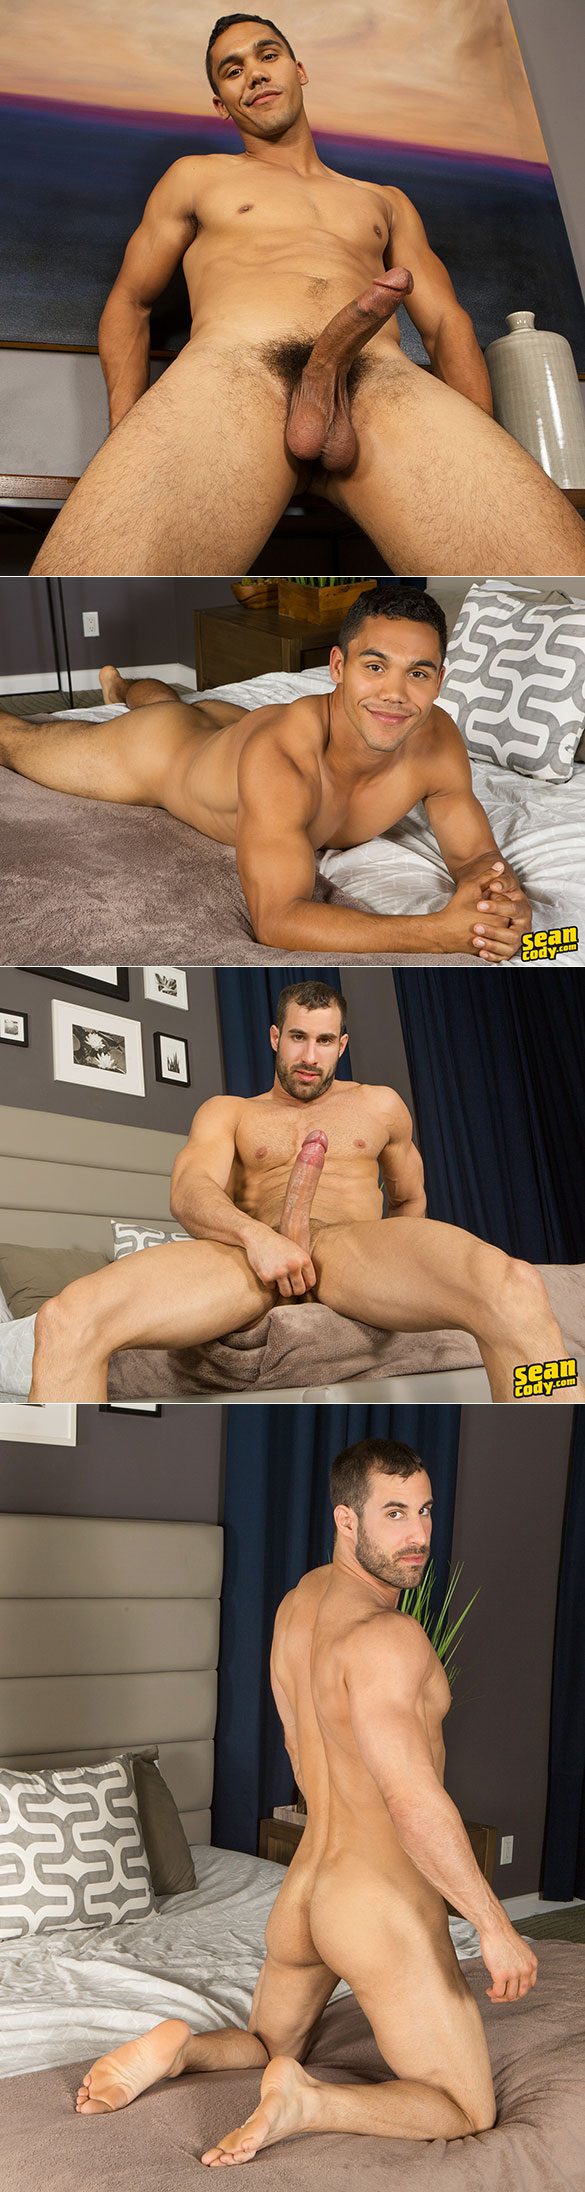 Sean Cody: Murray fucks Randy bareback